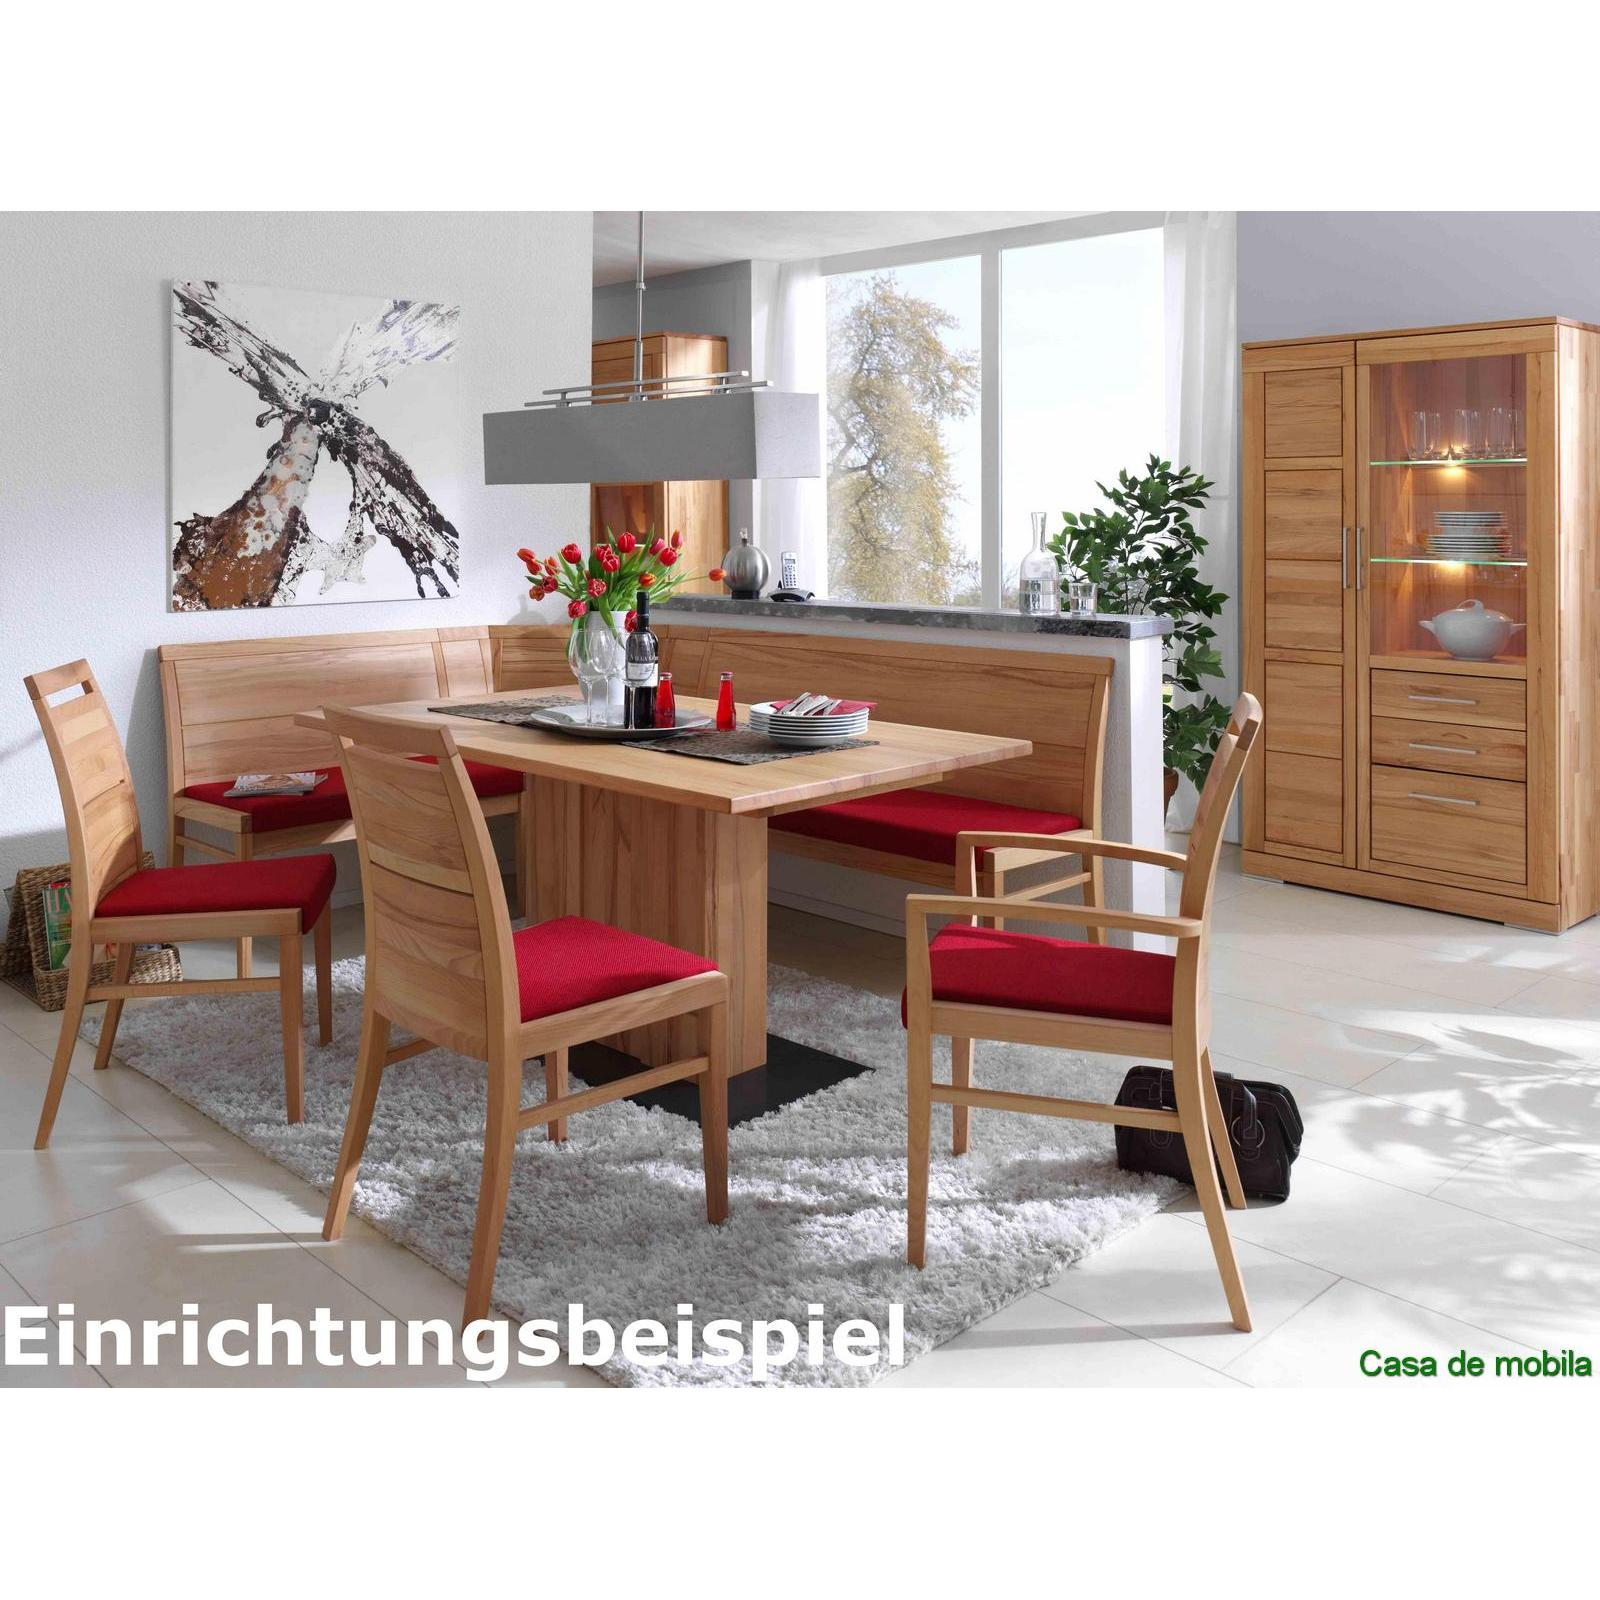 bank mit r ckenlehne bank 130 cm kernbuche massiv natur ge lt casera. Black Bedroom Furniture Sets. Home Design Ideas